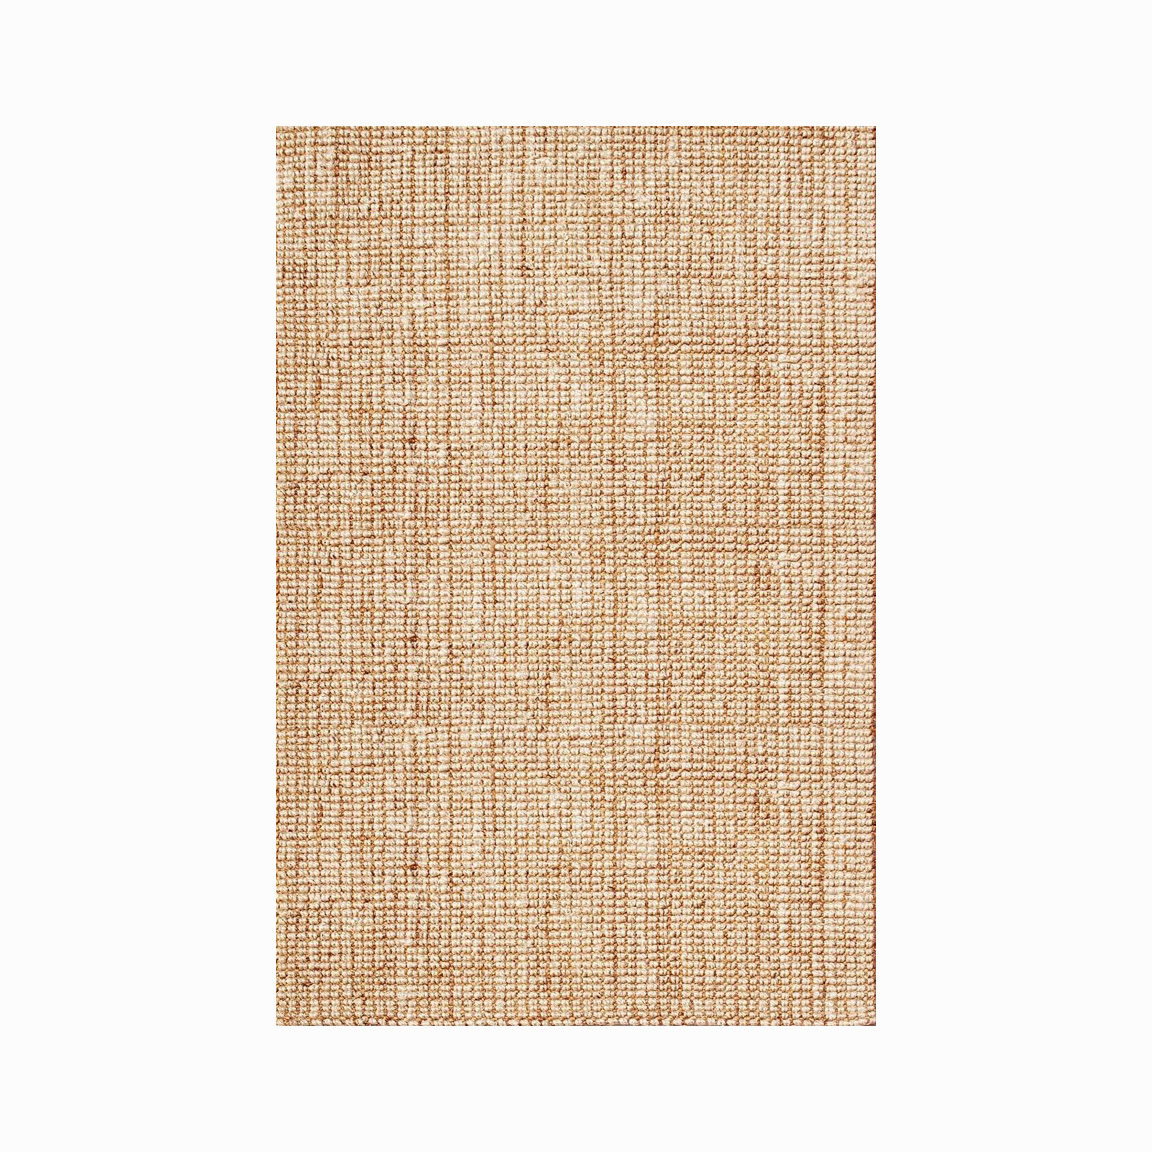 Jaipur Rugs Natural • $368